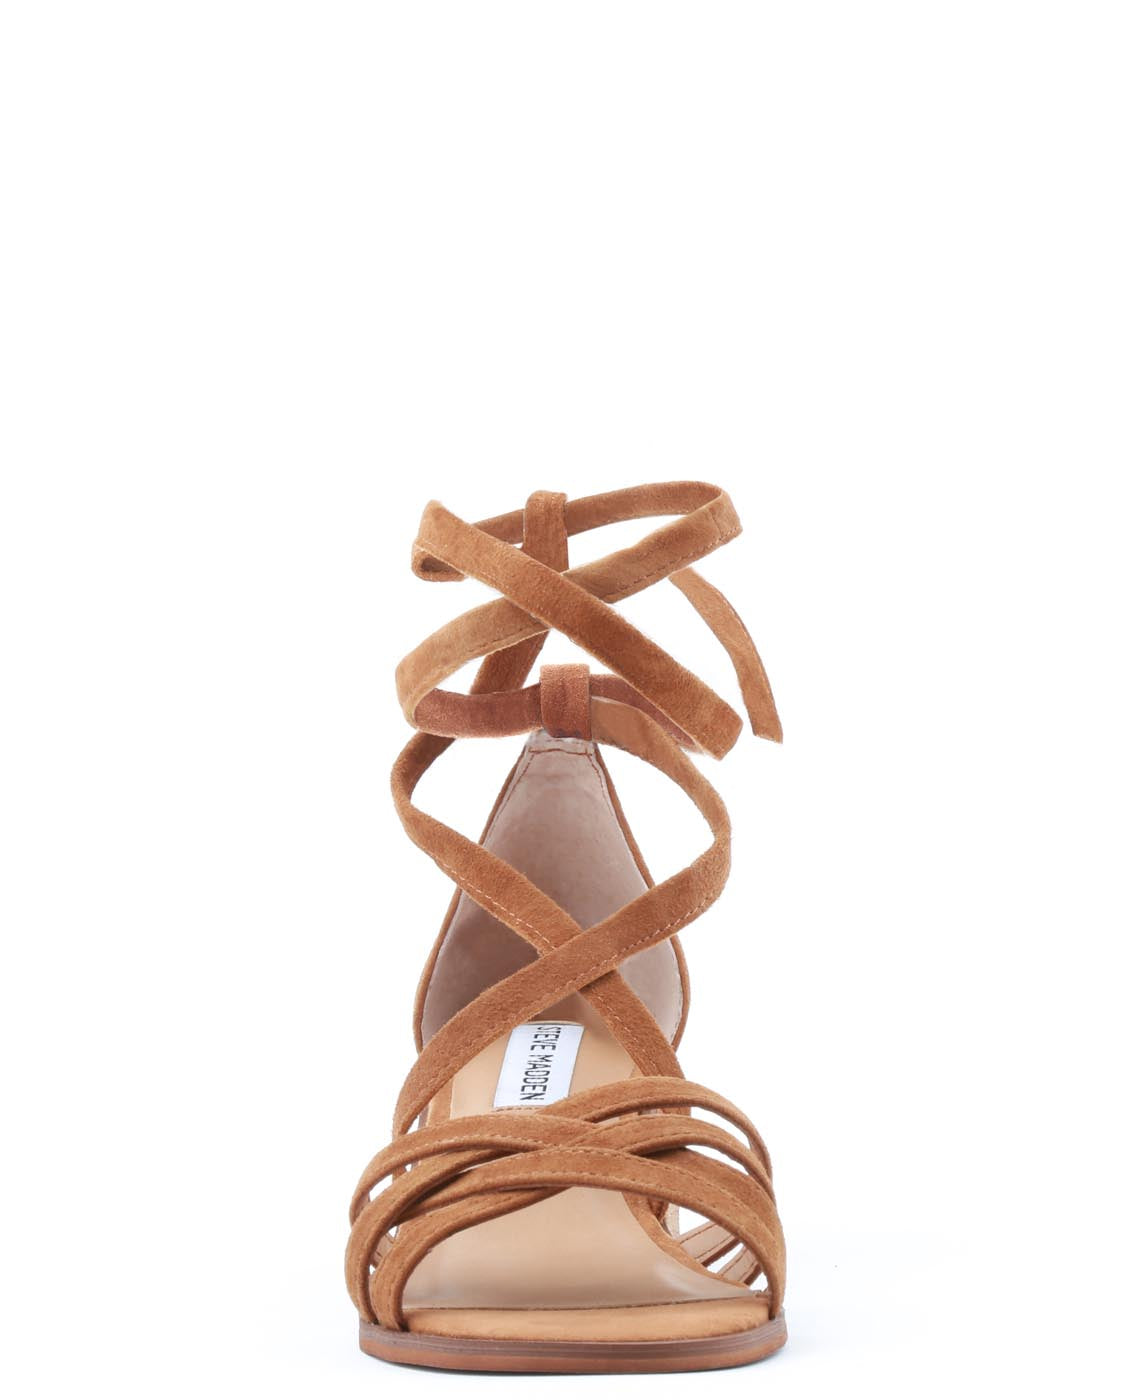 8d58c896c81 Steve Madden Revere Suede Ankle Strap Heels - Fashion You Up